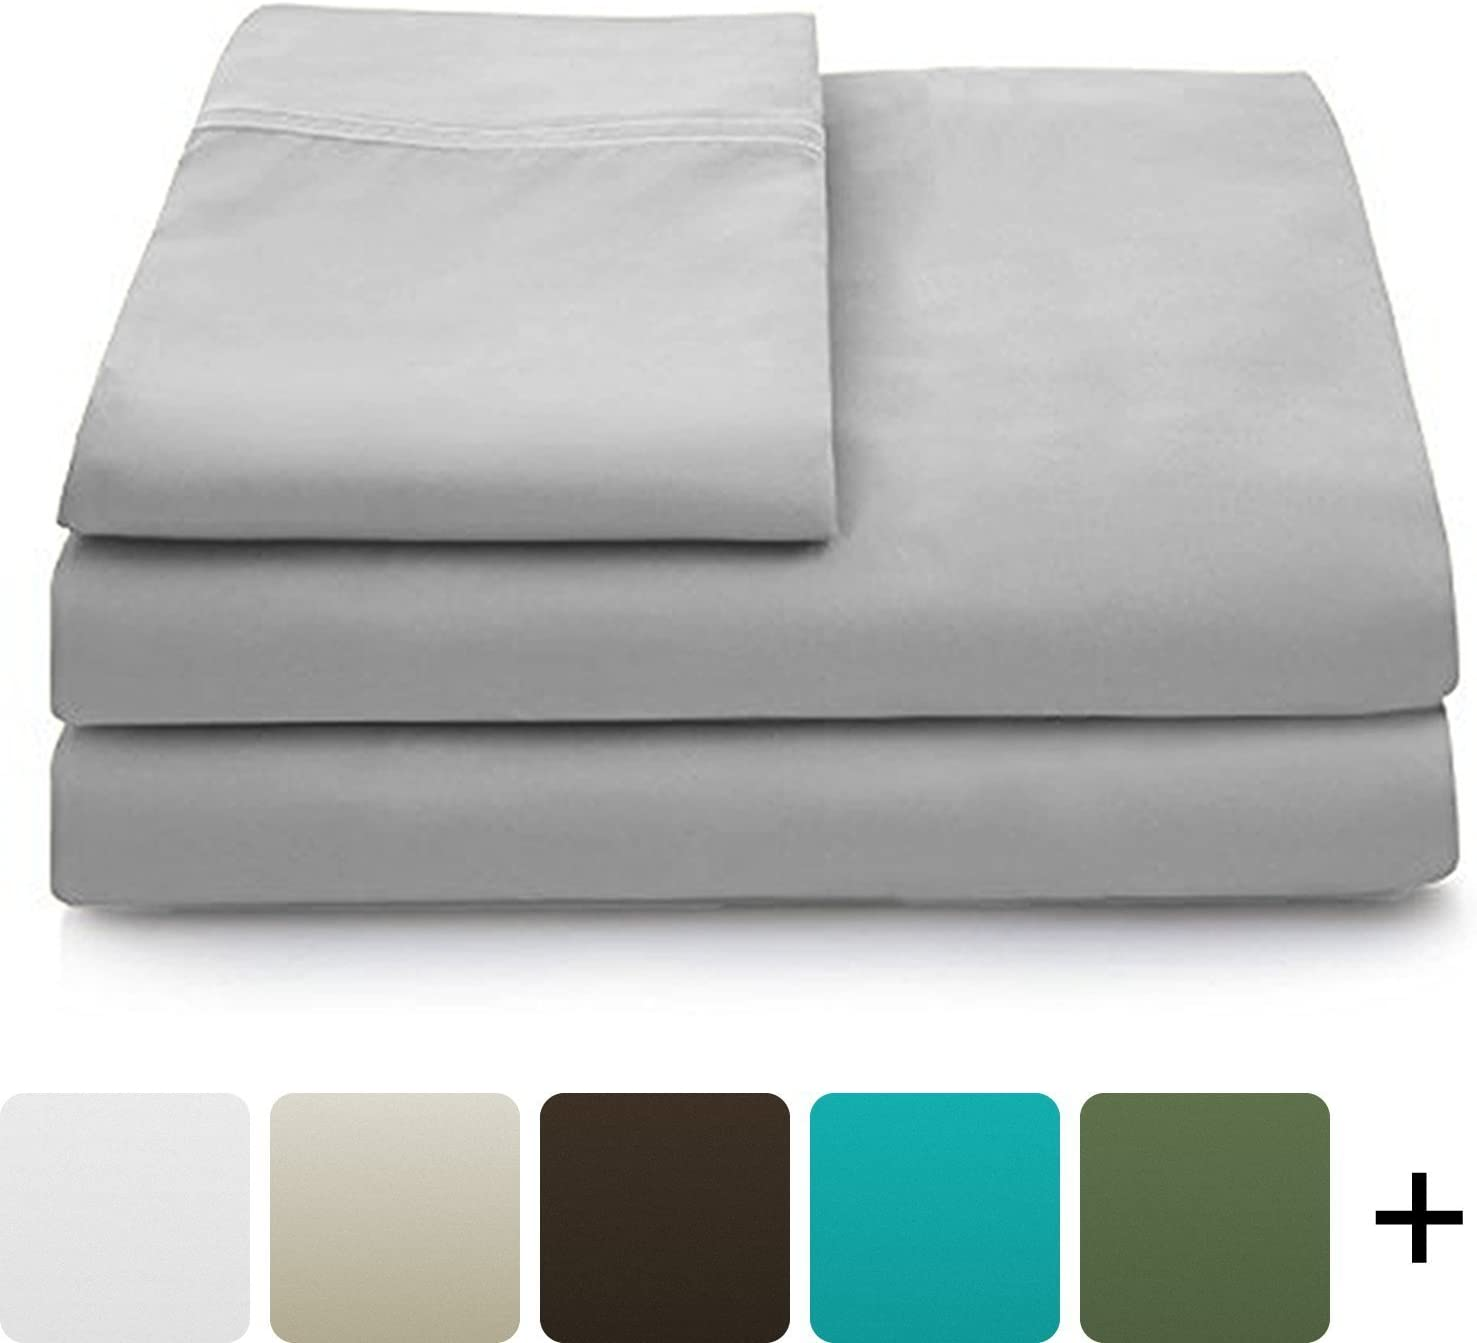 Cosy House Collection Luxury Bamboo Bed Sheet Set - Hypoallergenic Bedding Blend from Natural Bamboo Fiber - Resists Wrinkles - 4 Piece - 1 Fitted Sheet, 1 Flat, 2 Pillowcases - Queen, Silver